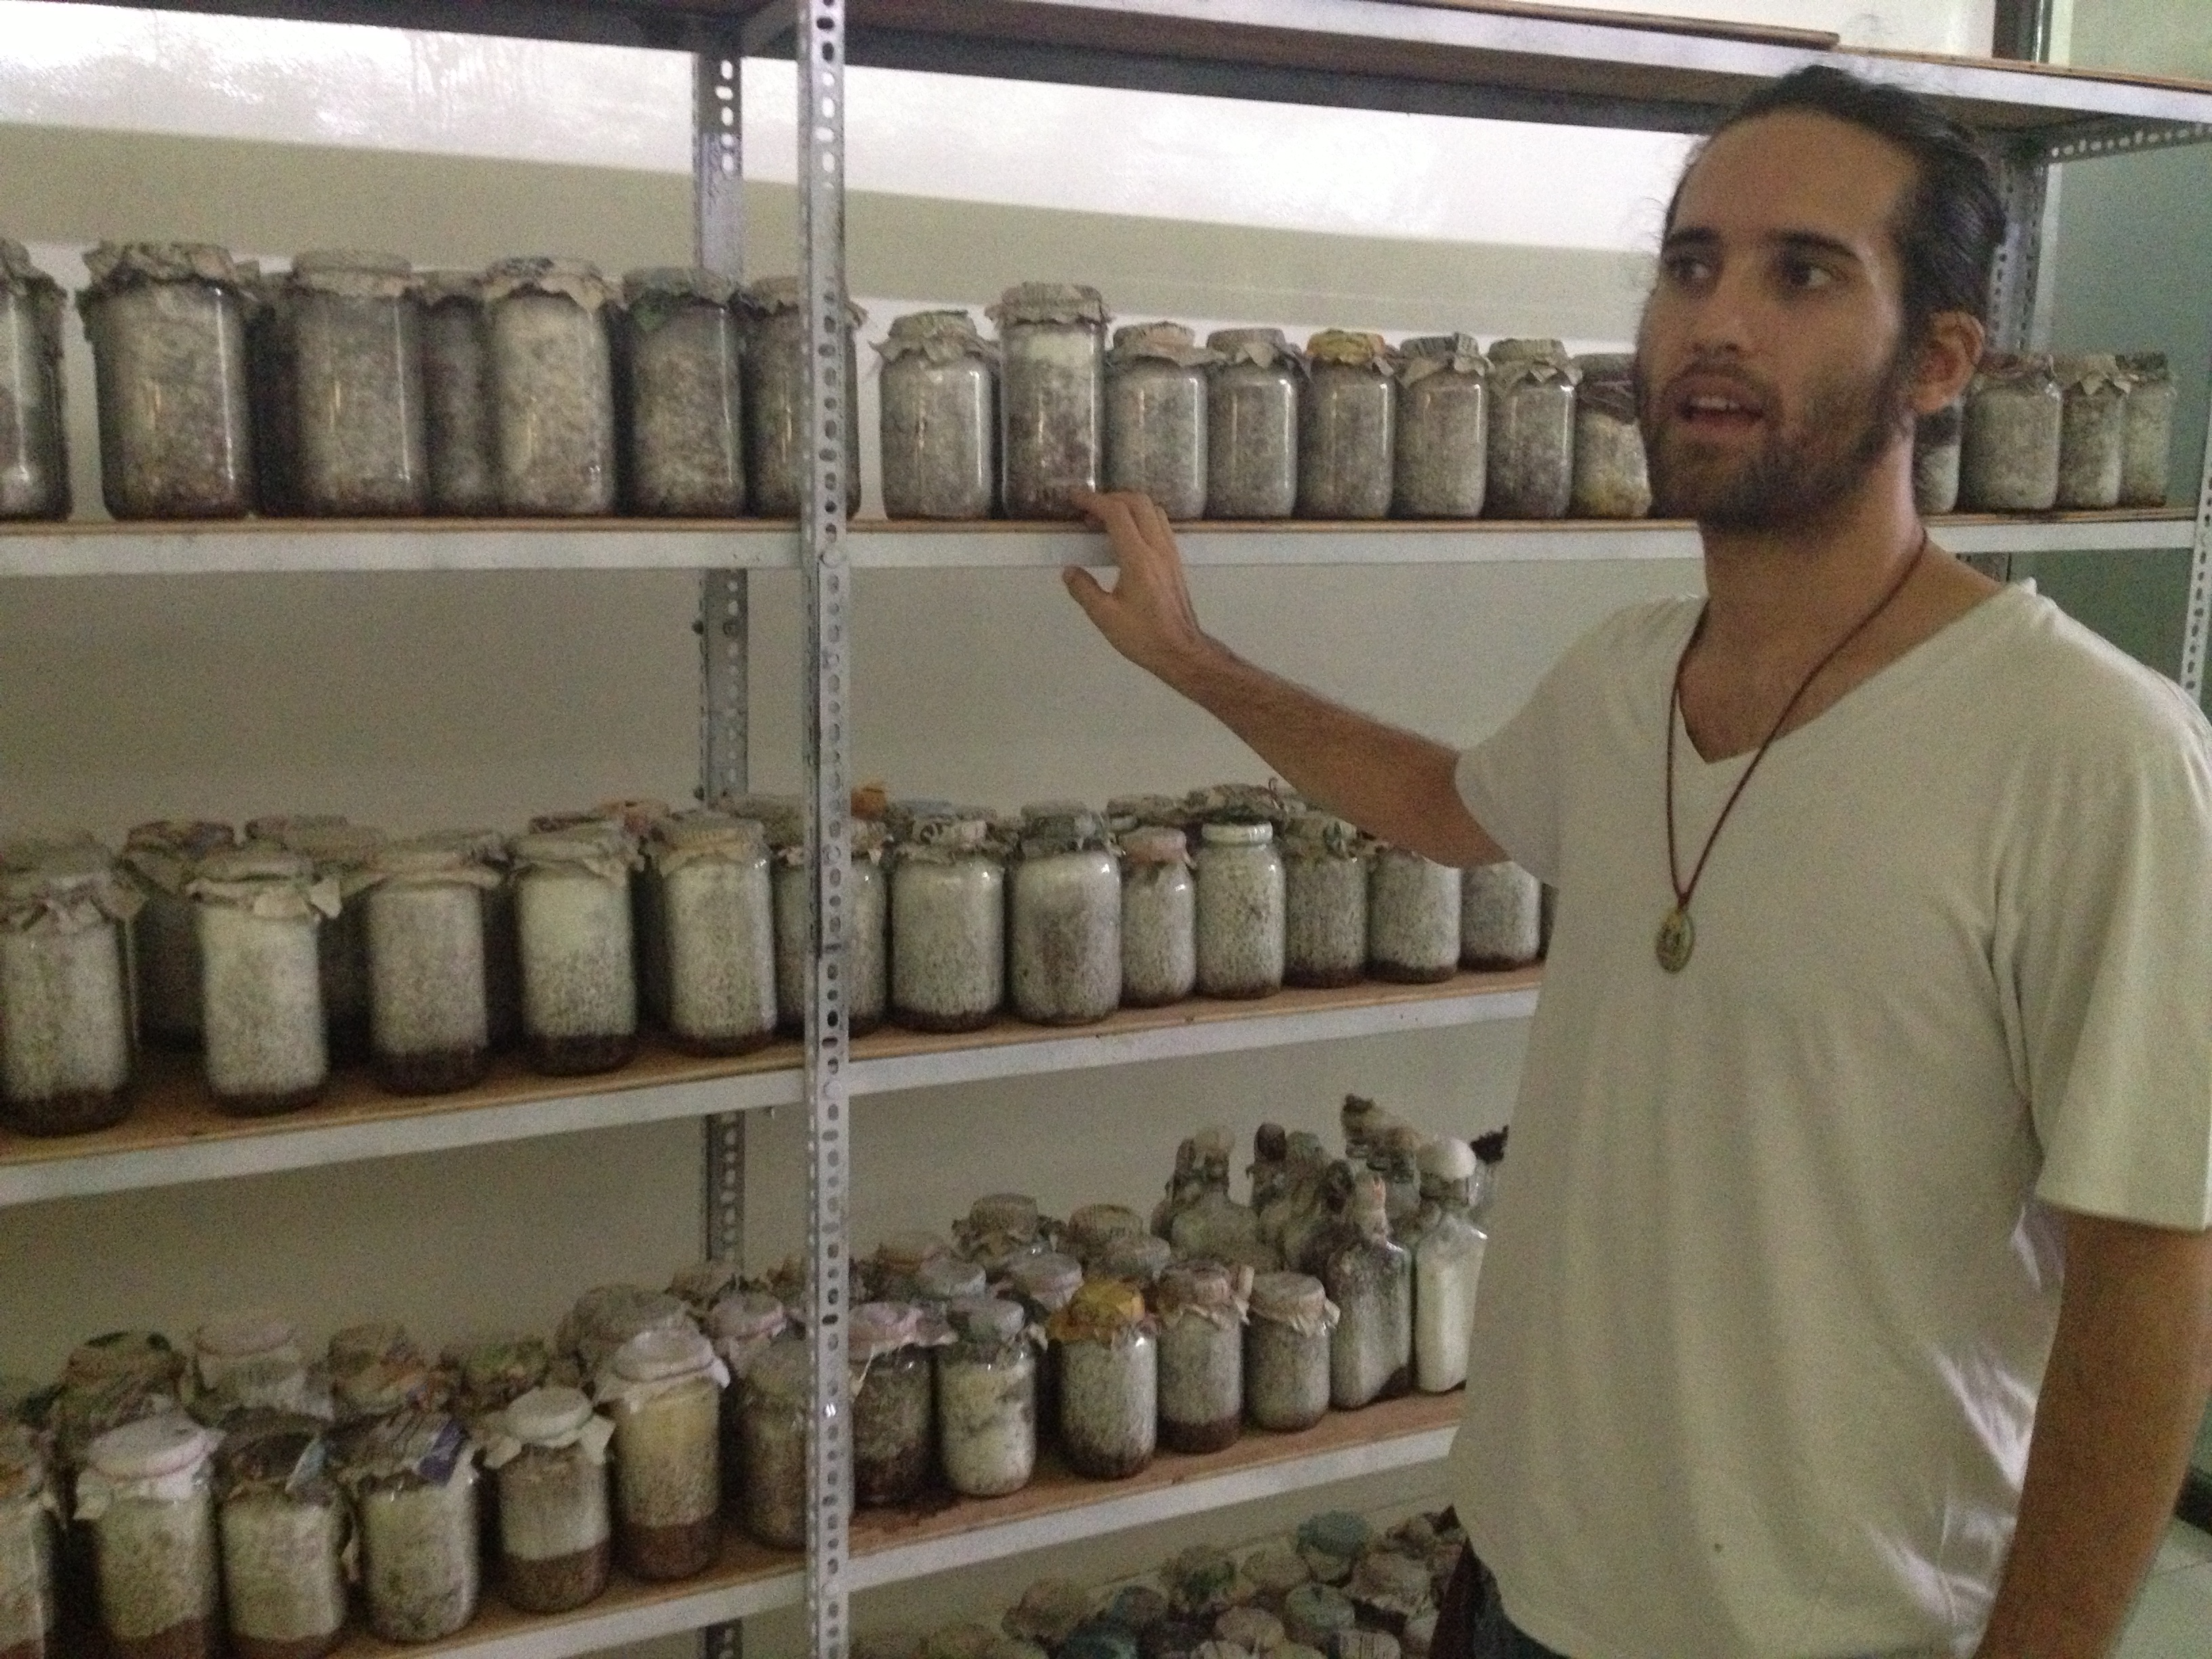 Culturing mushrooms by the variety